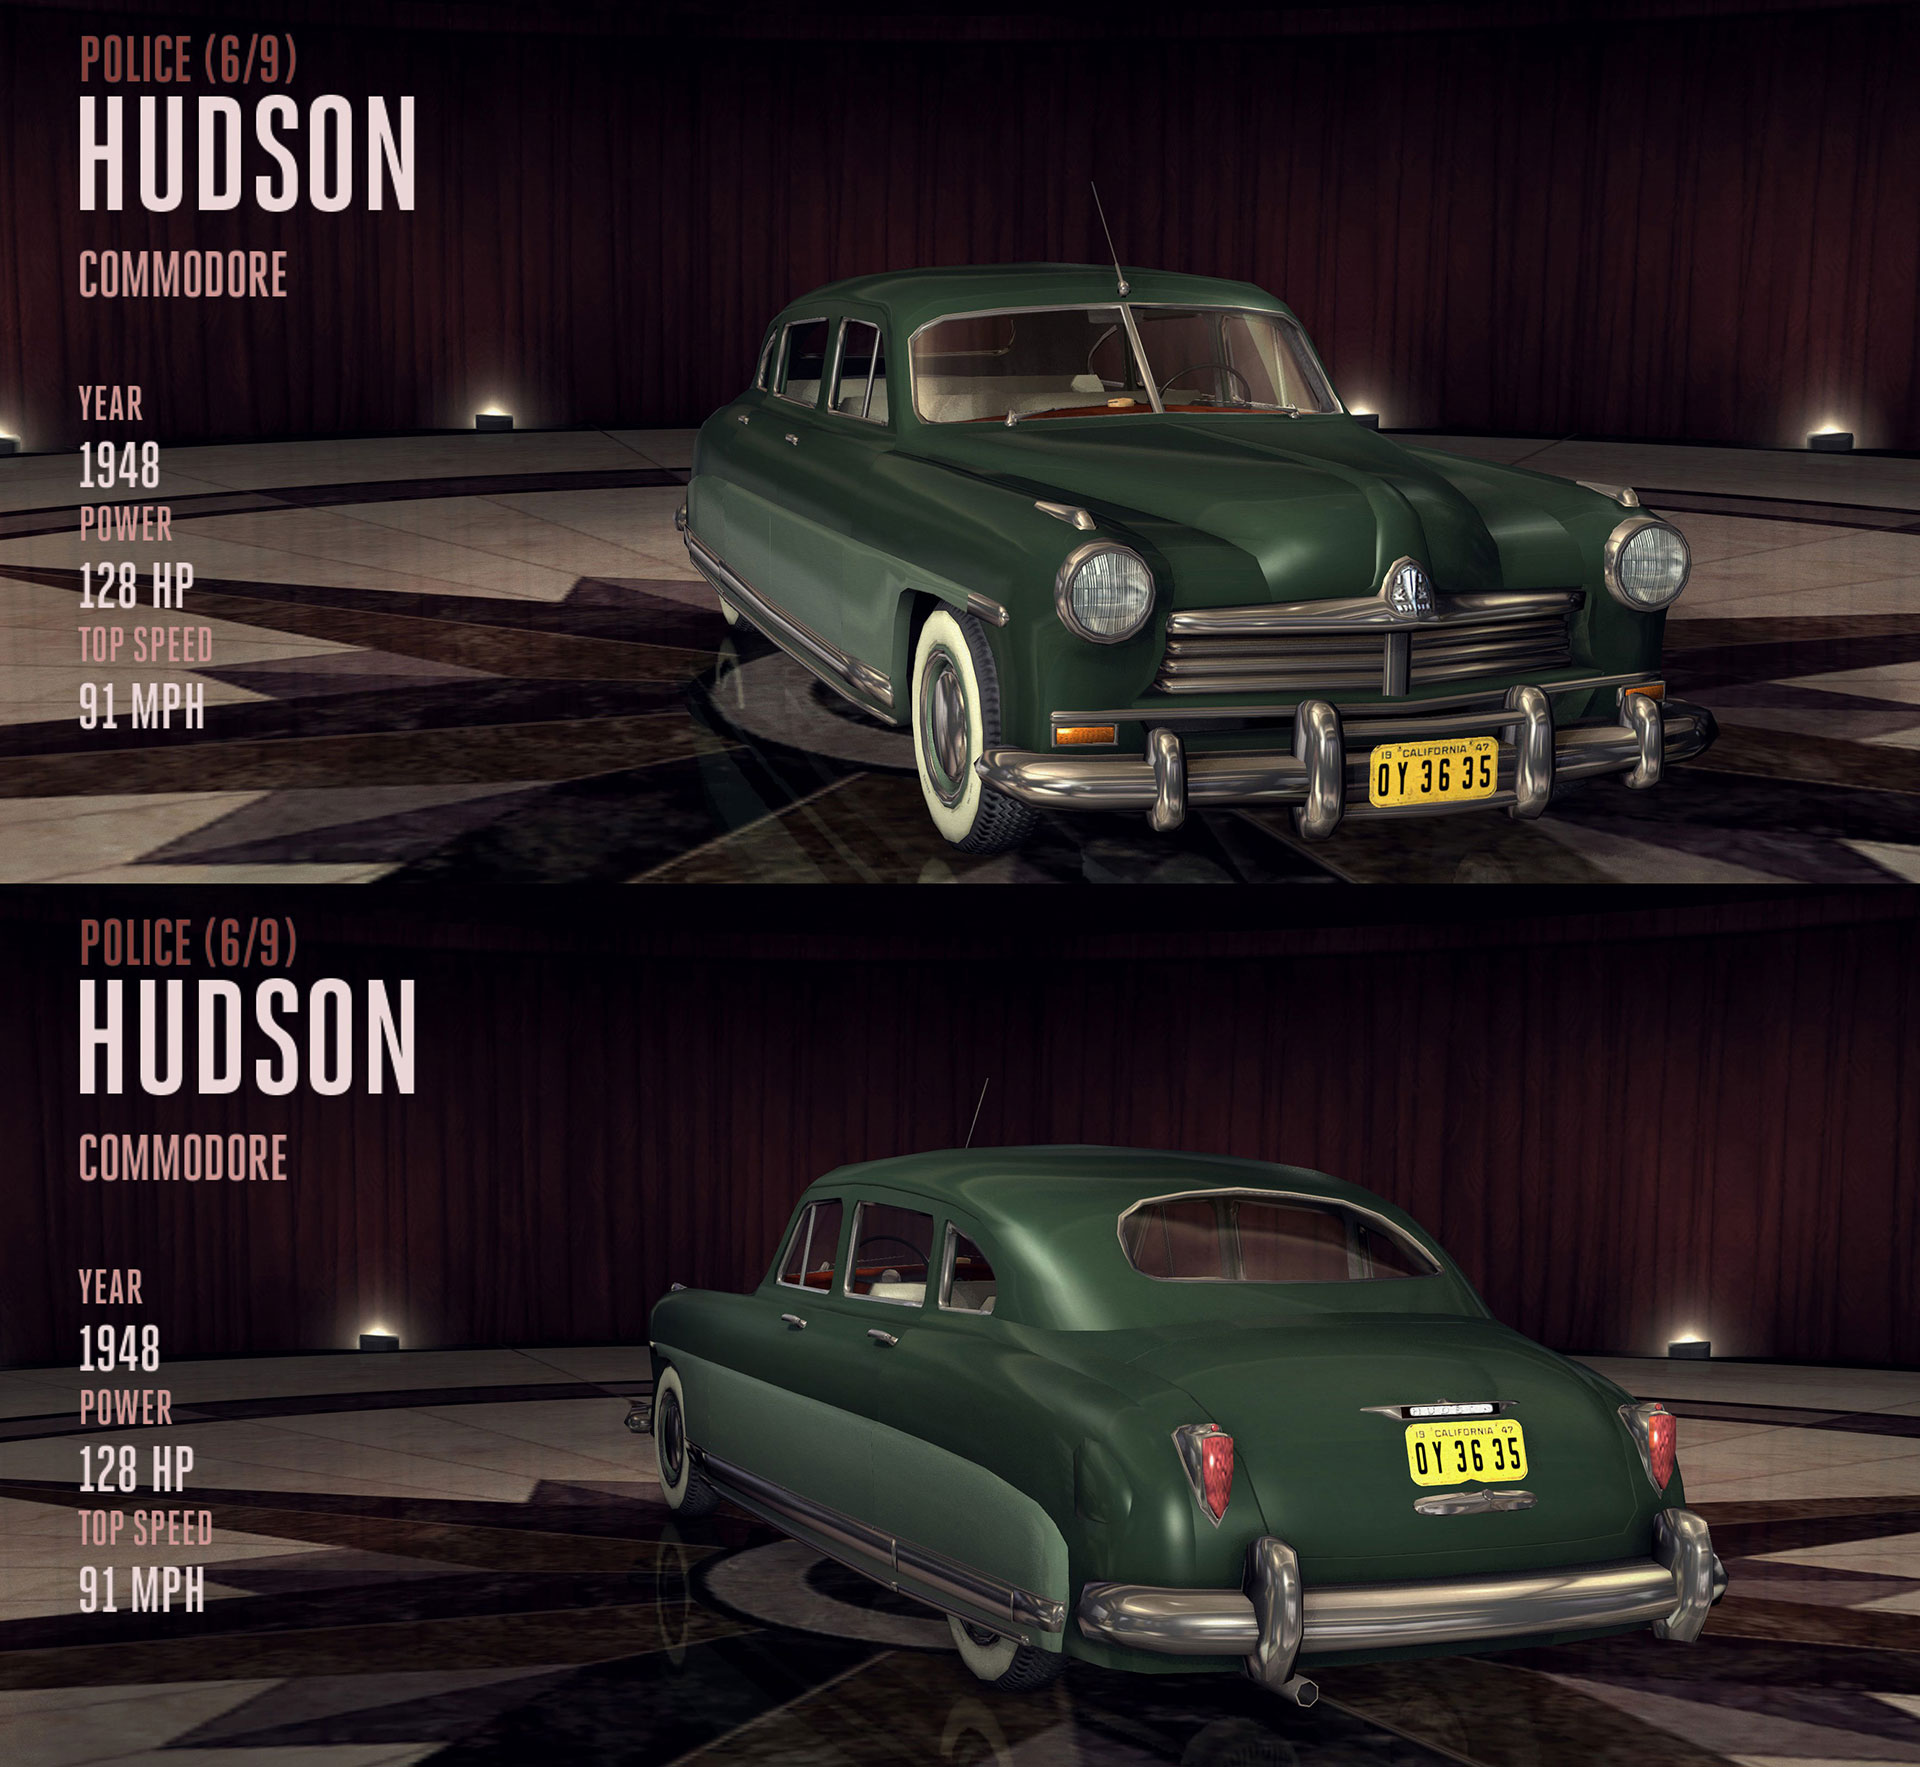 File:1948-hudson-commodore.jpg